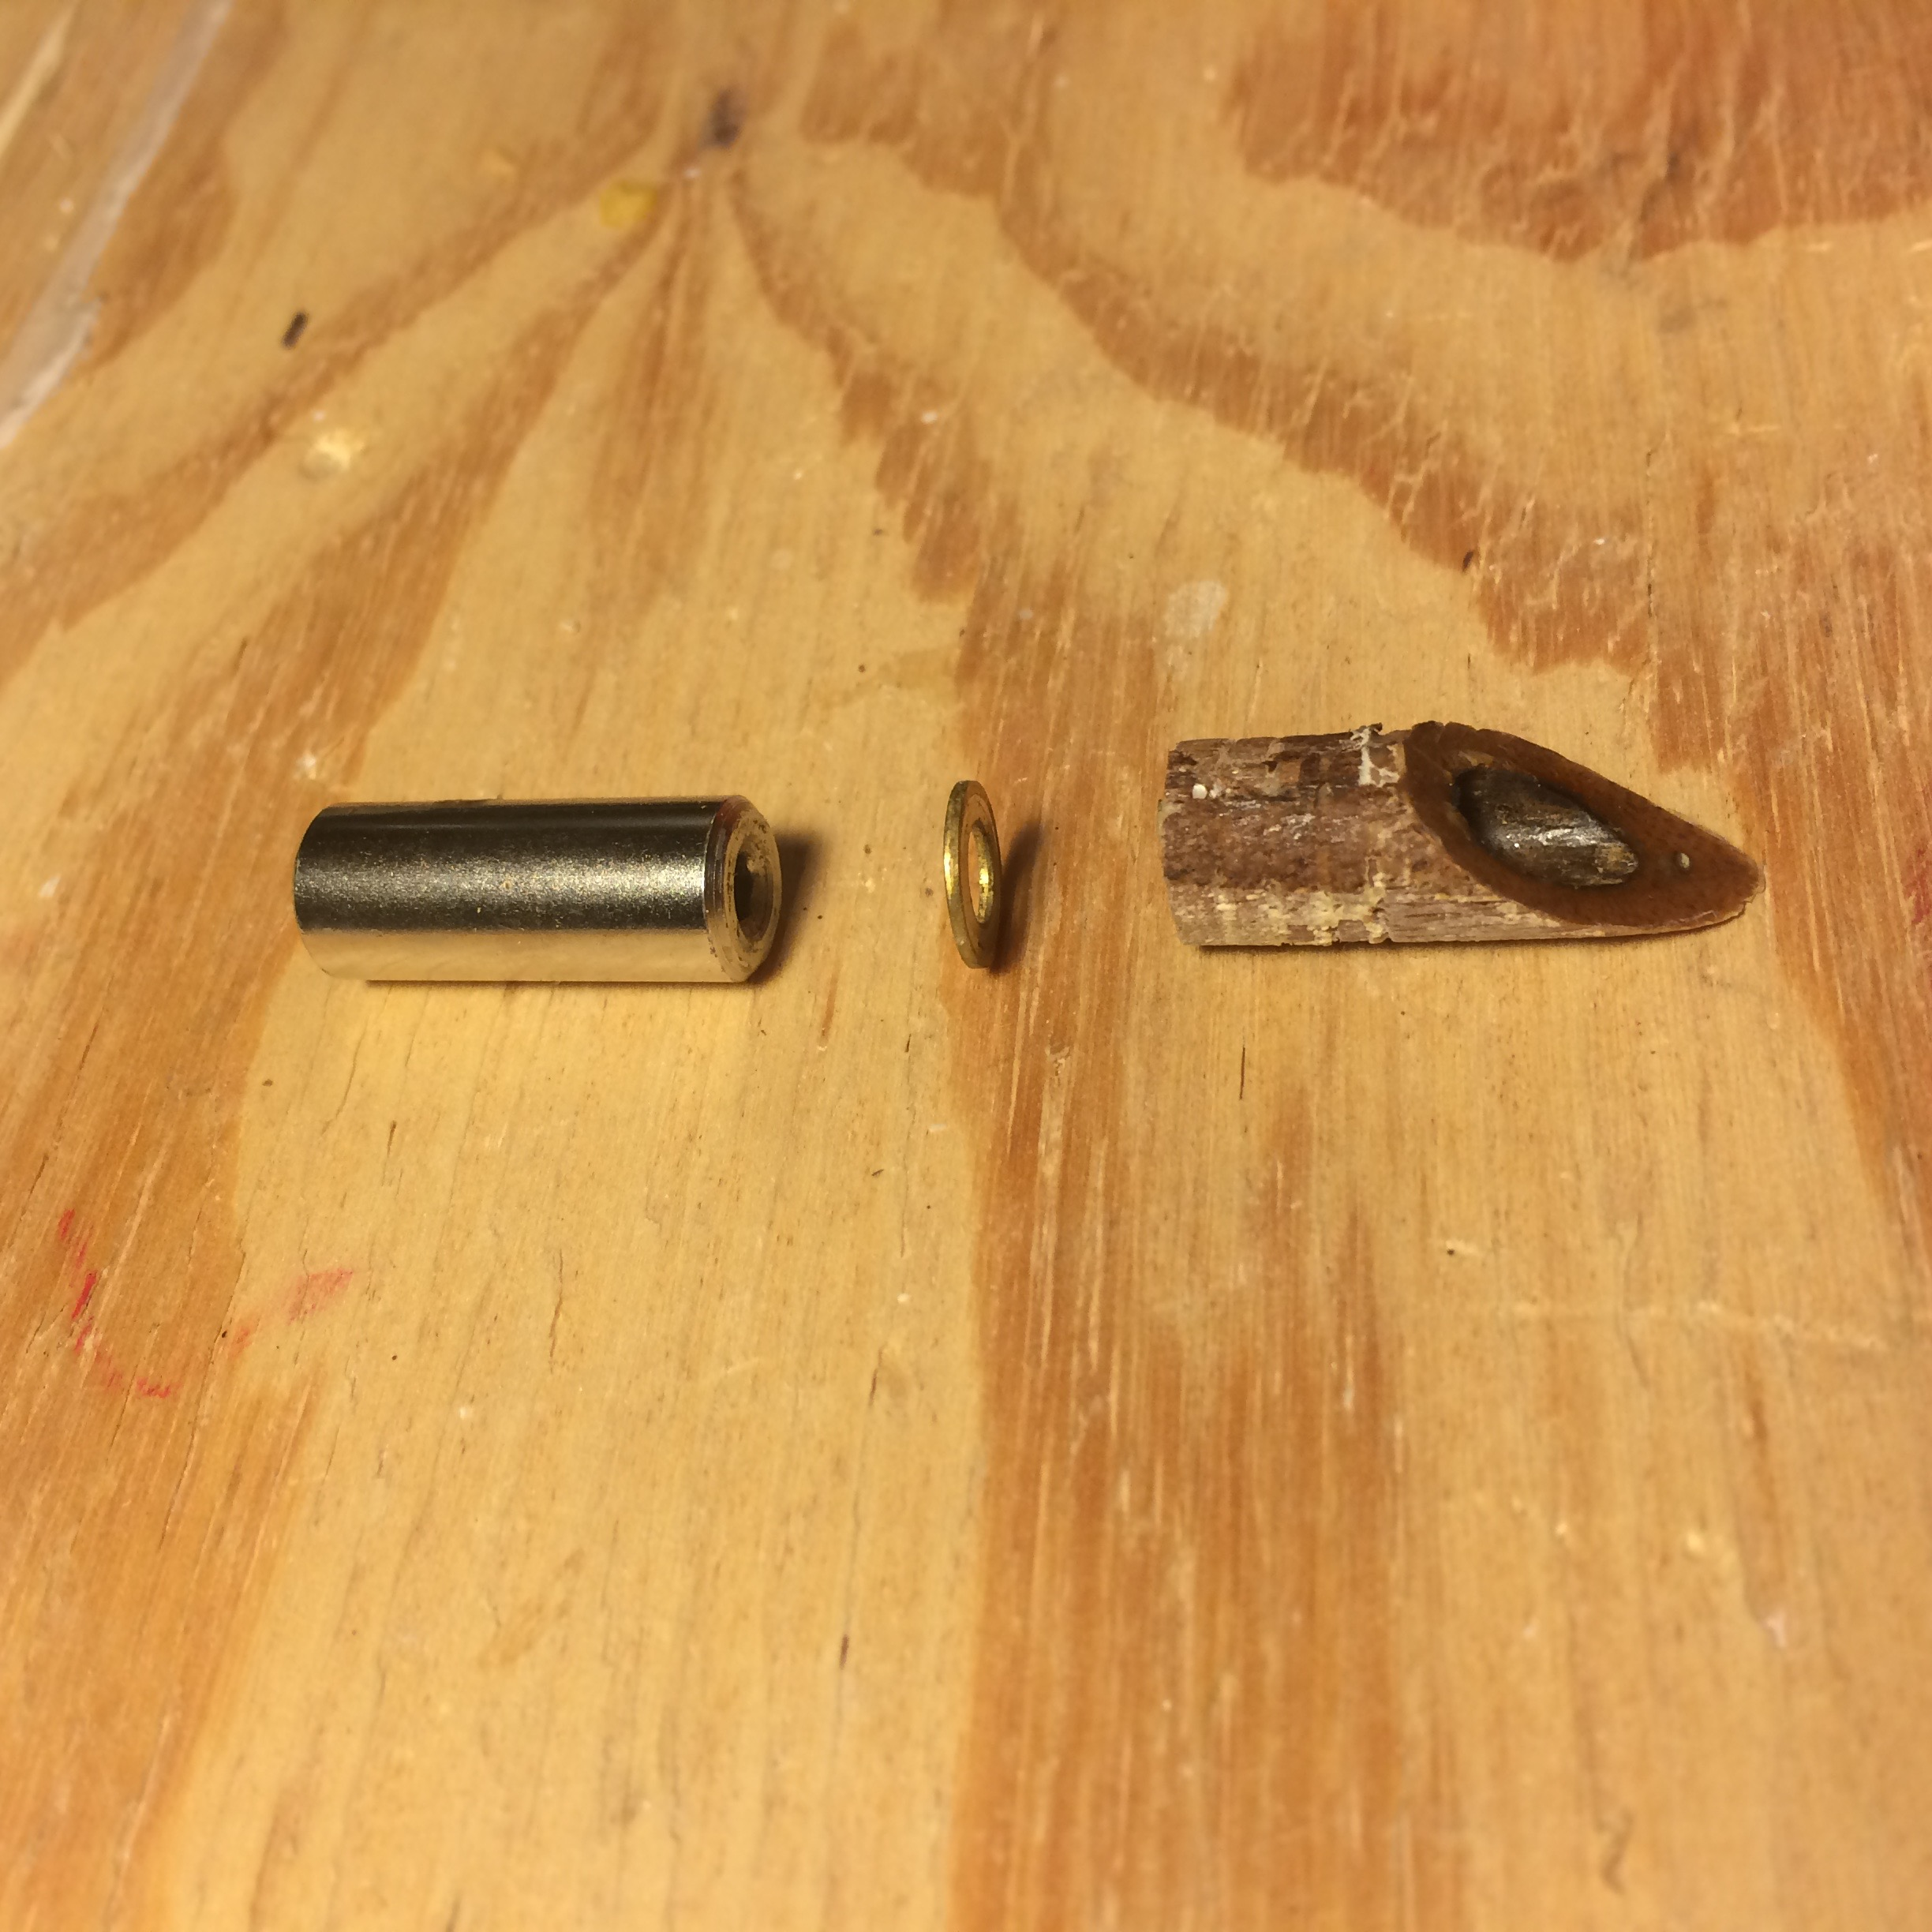 Here's how they install: Truss Rod Nut - Washer - Walnut Headstock Plug